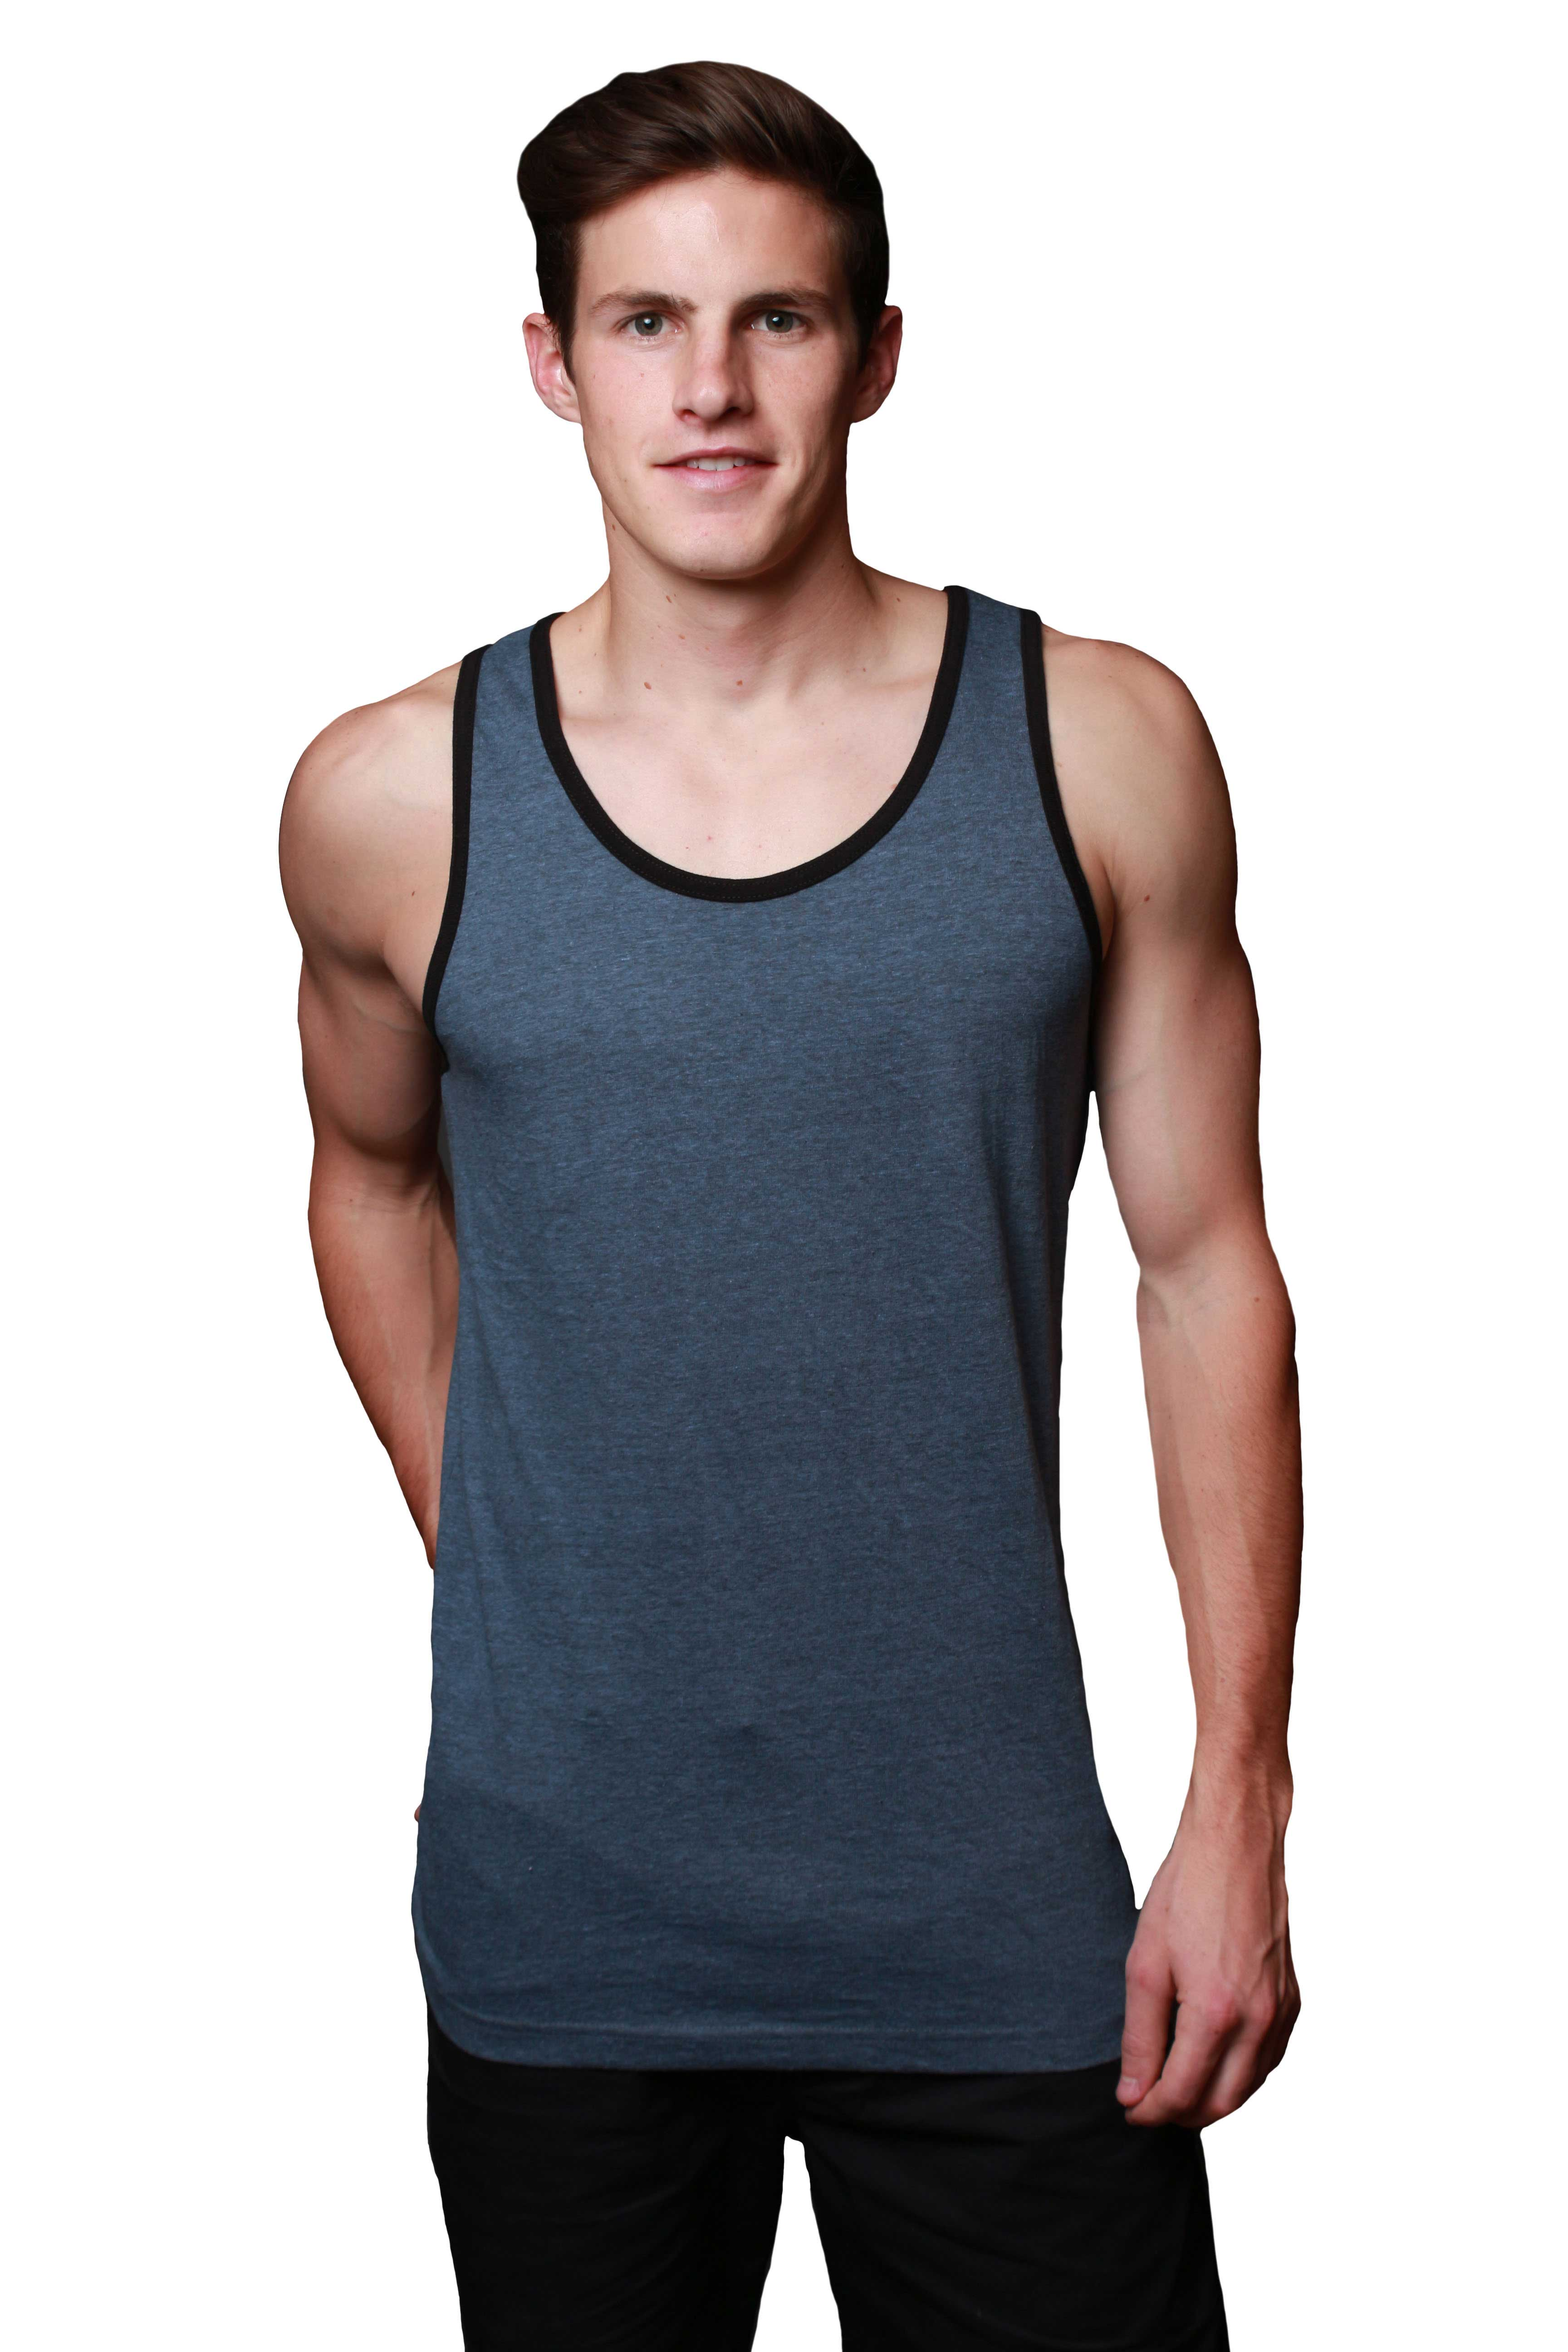 dcd763c5 Men's Premium 32-Single Classic Tank-Top with Contrast Binding – MTT13152